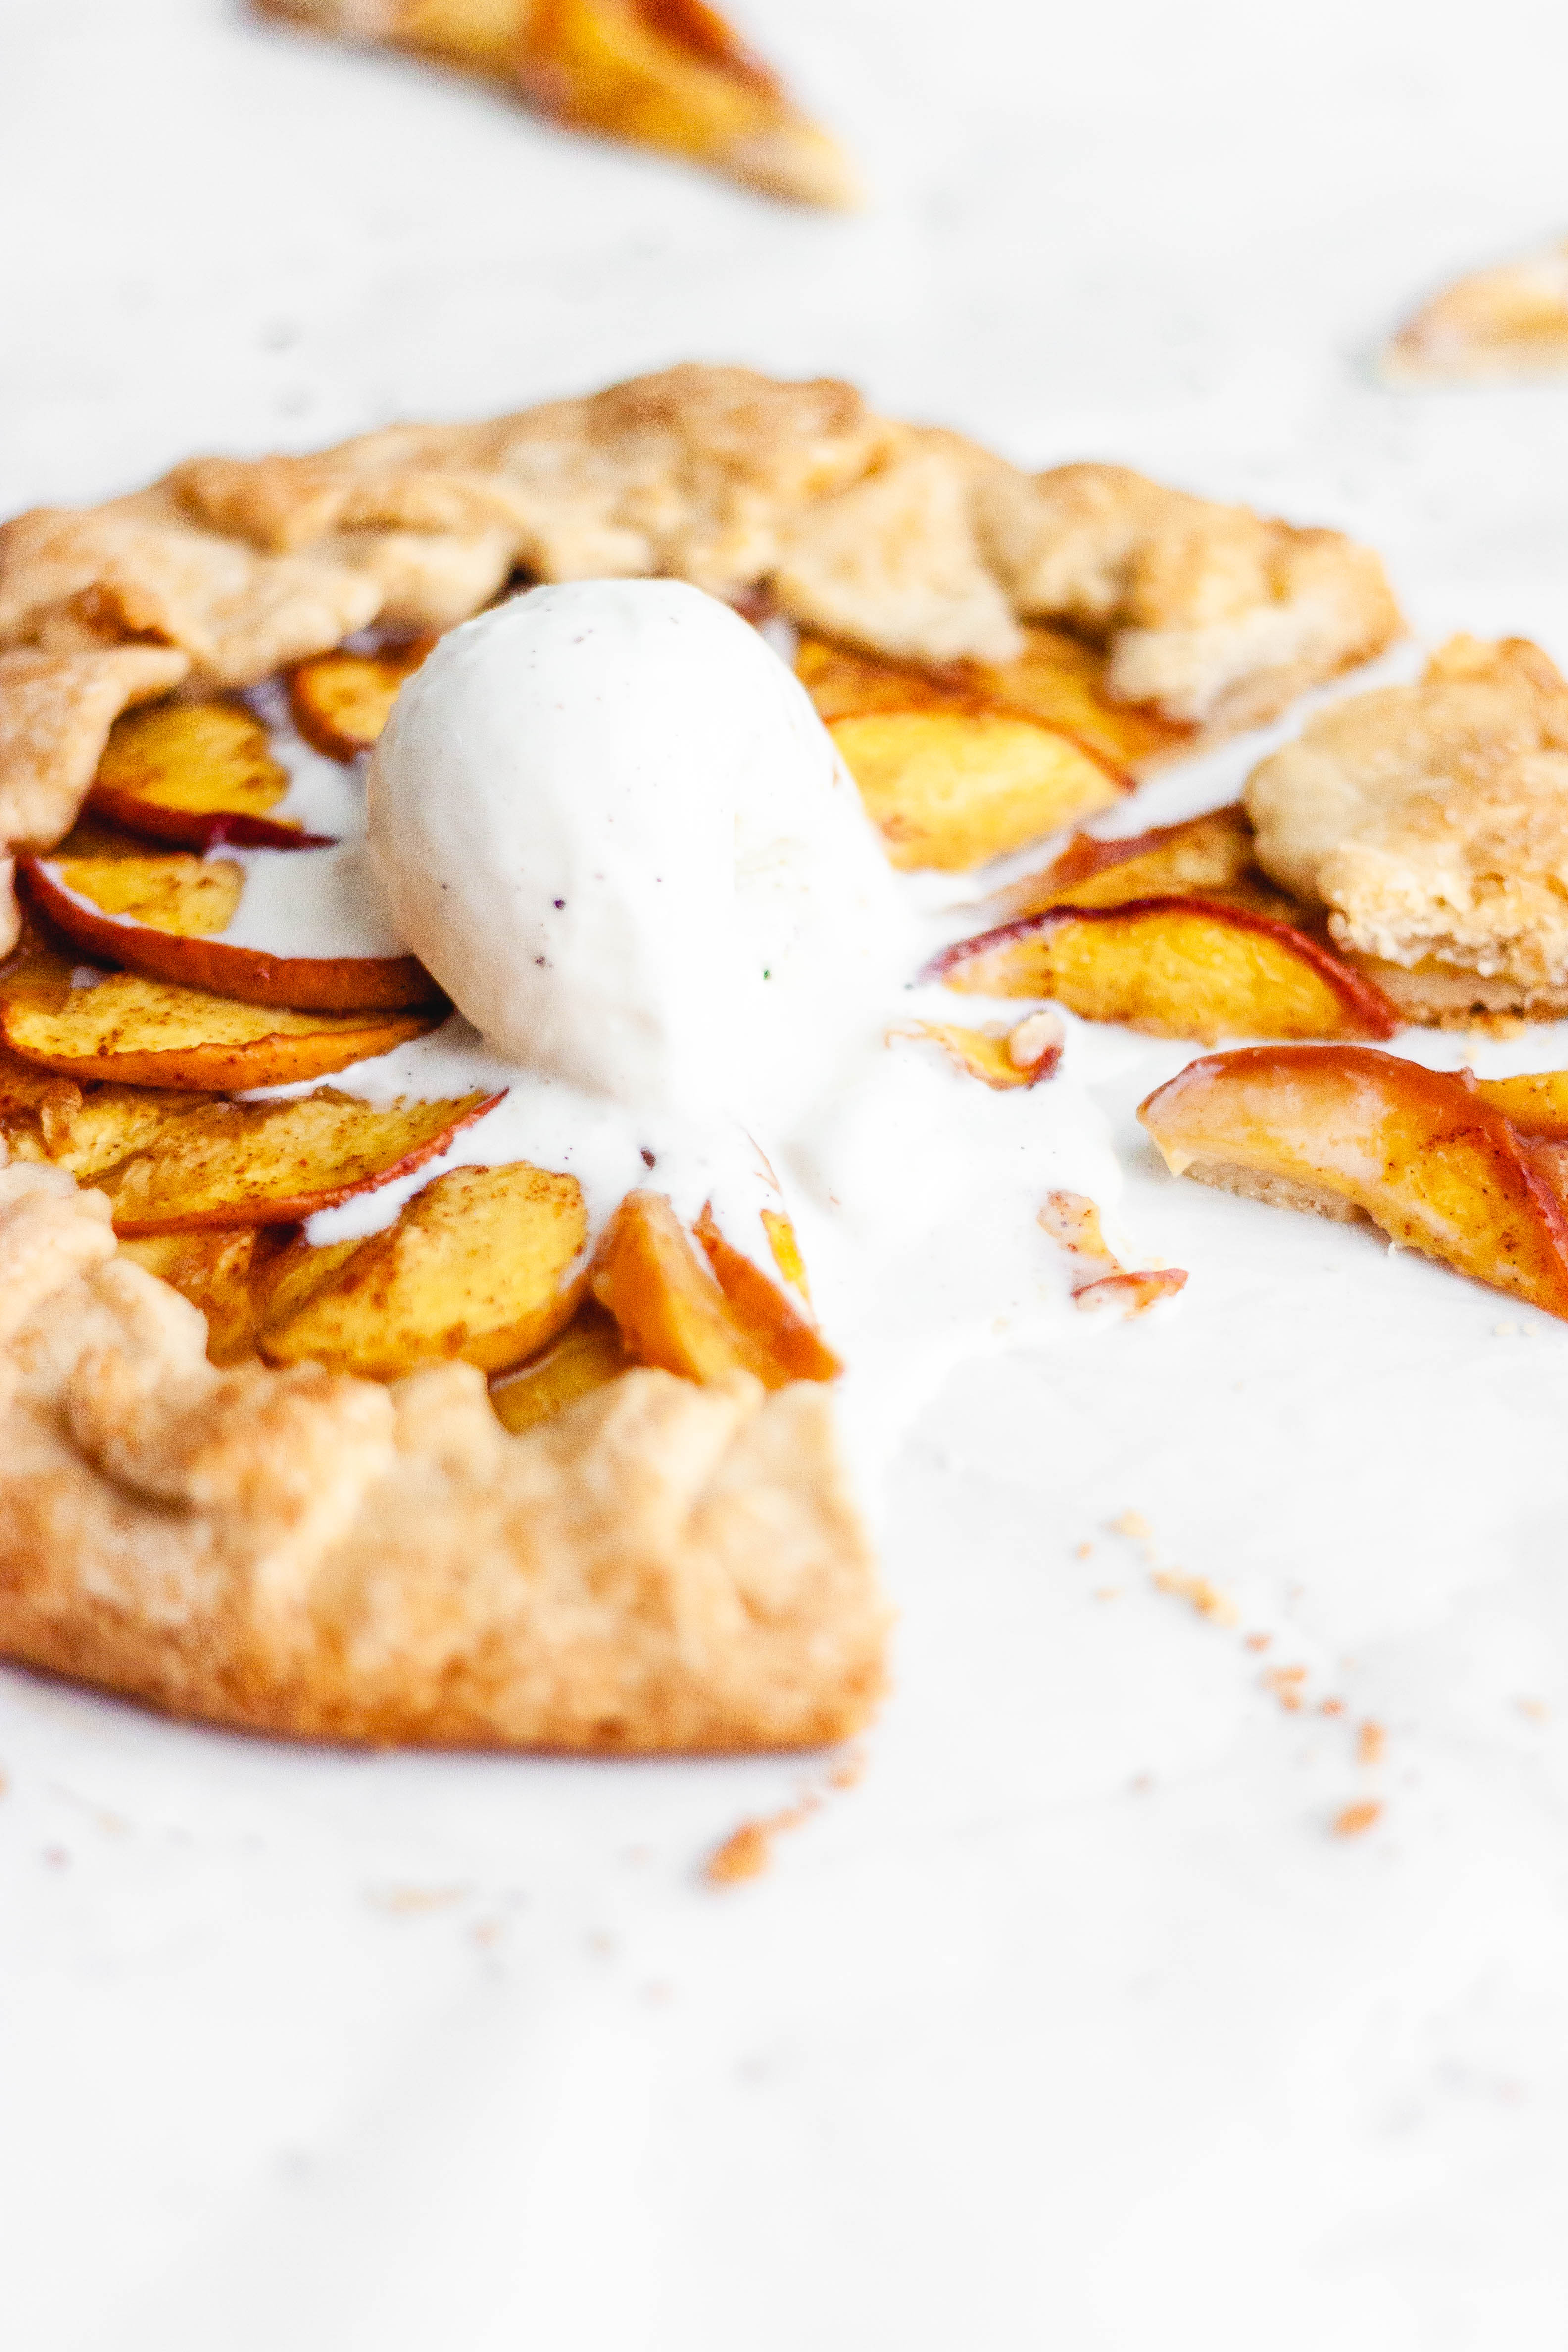 Sliced peach galette with a scoop of ice cream in the middle